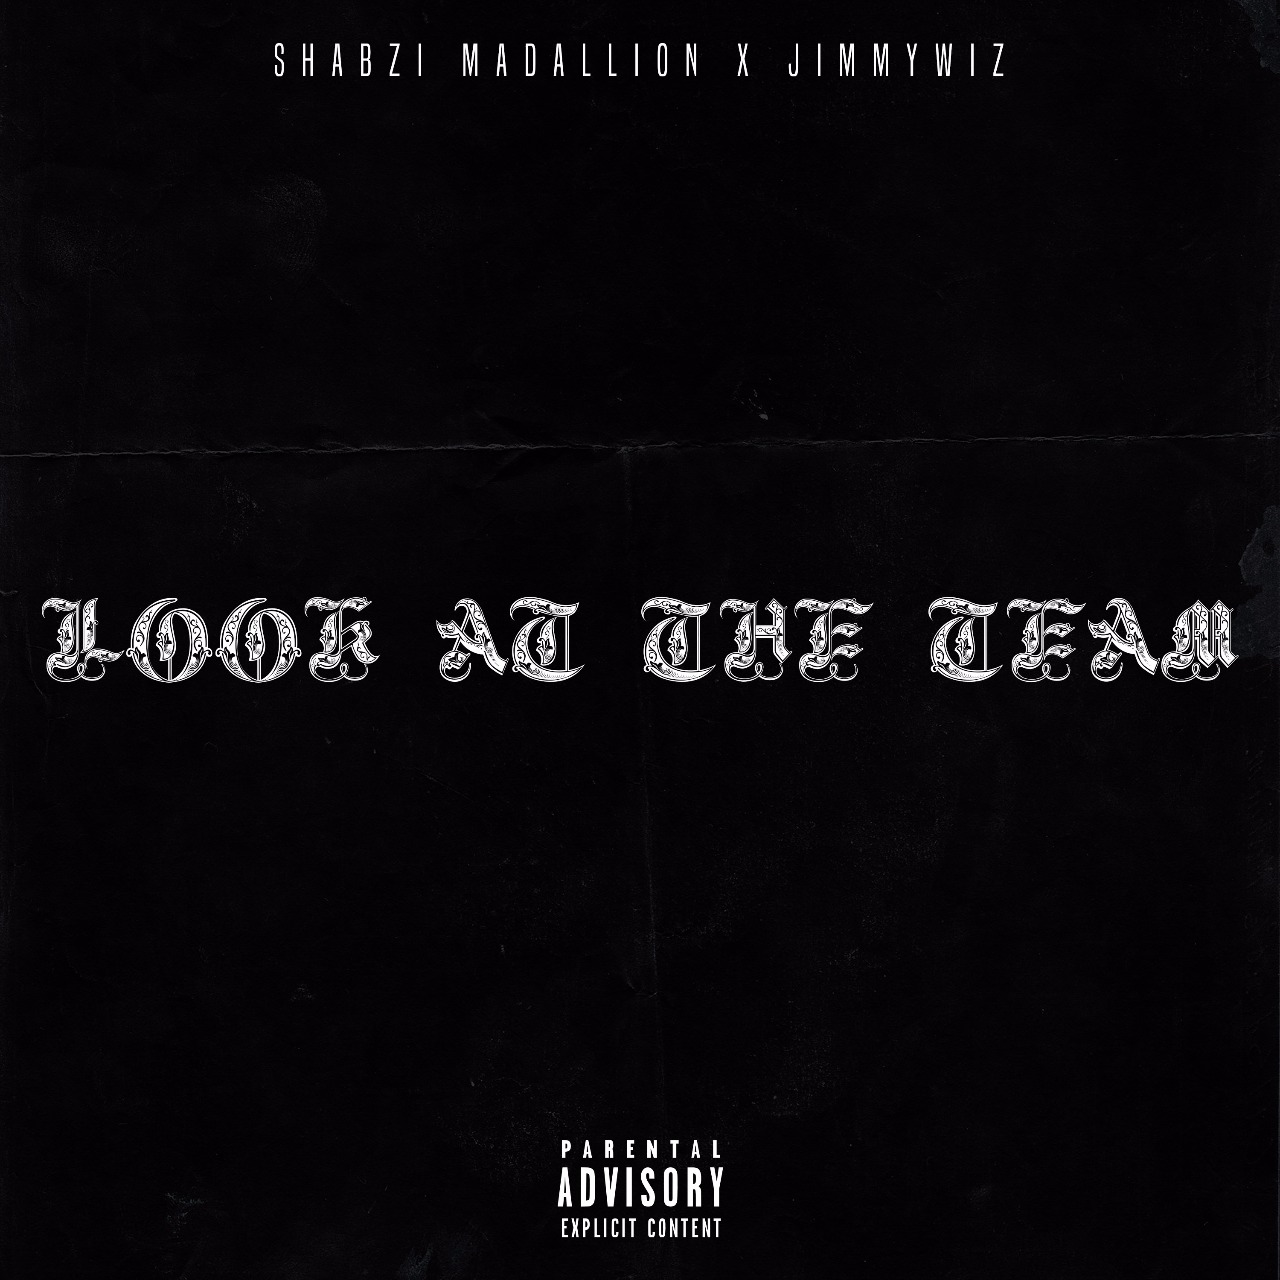 shabzi madallion ShabZi Madallion x Jimmy Wiz Drop New 'Look At The Team' Collab Album [Listen] LOOK AT THE TEAM